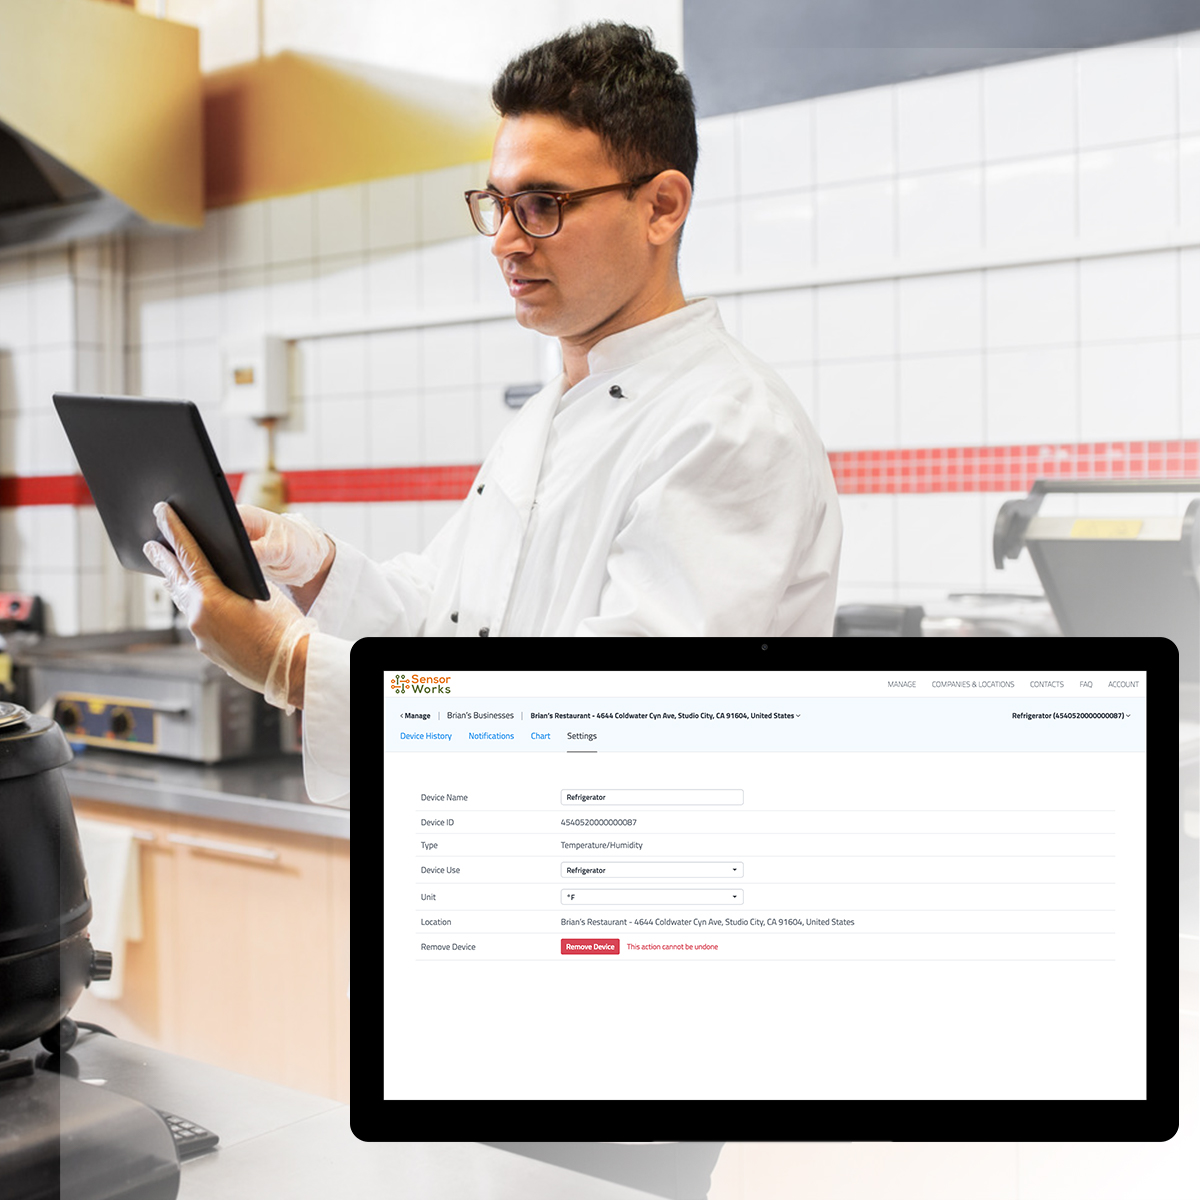 Chef remotely monitoring food inventory inside a refrigerator